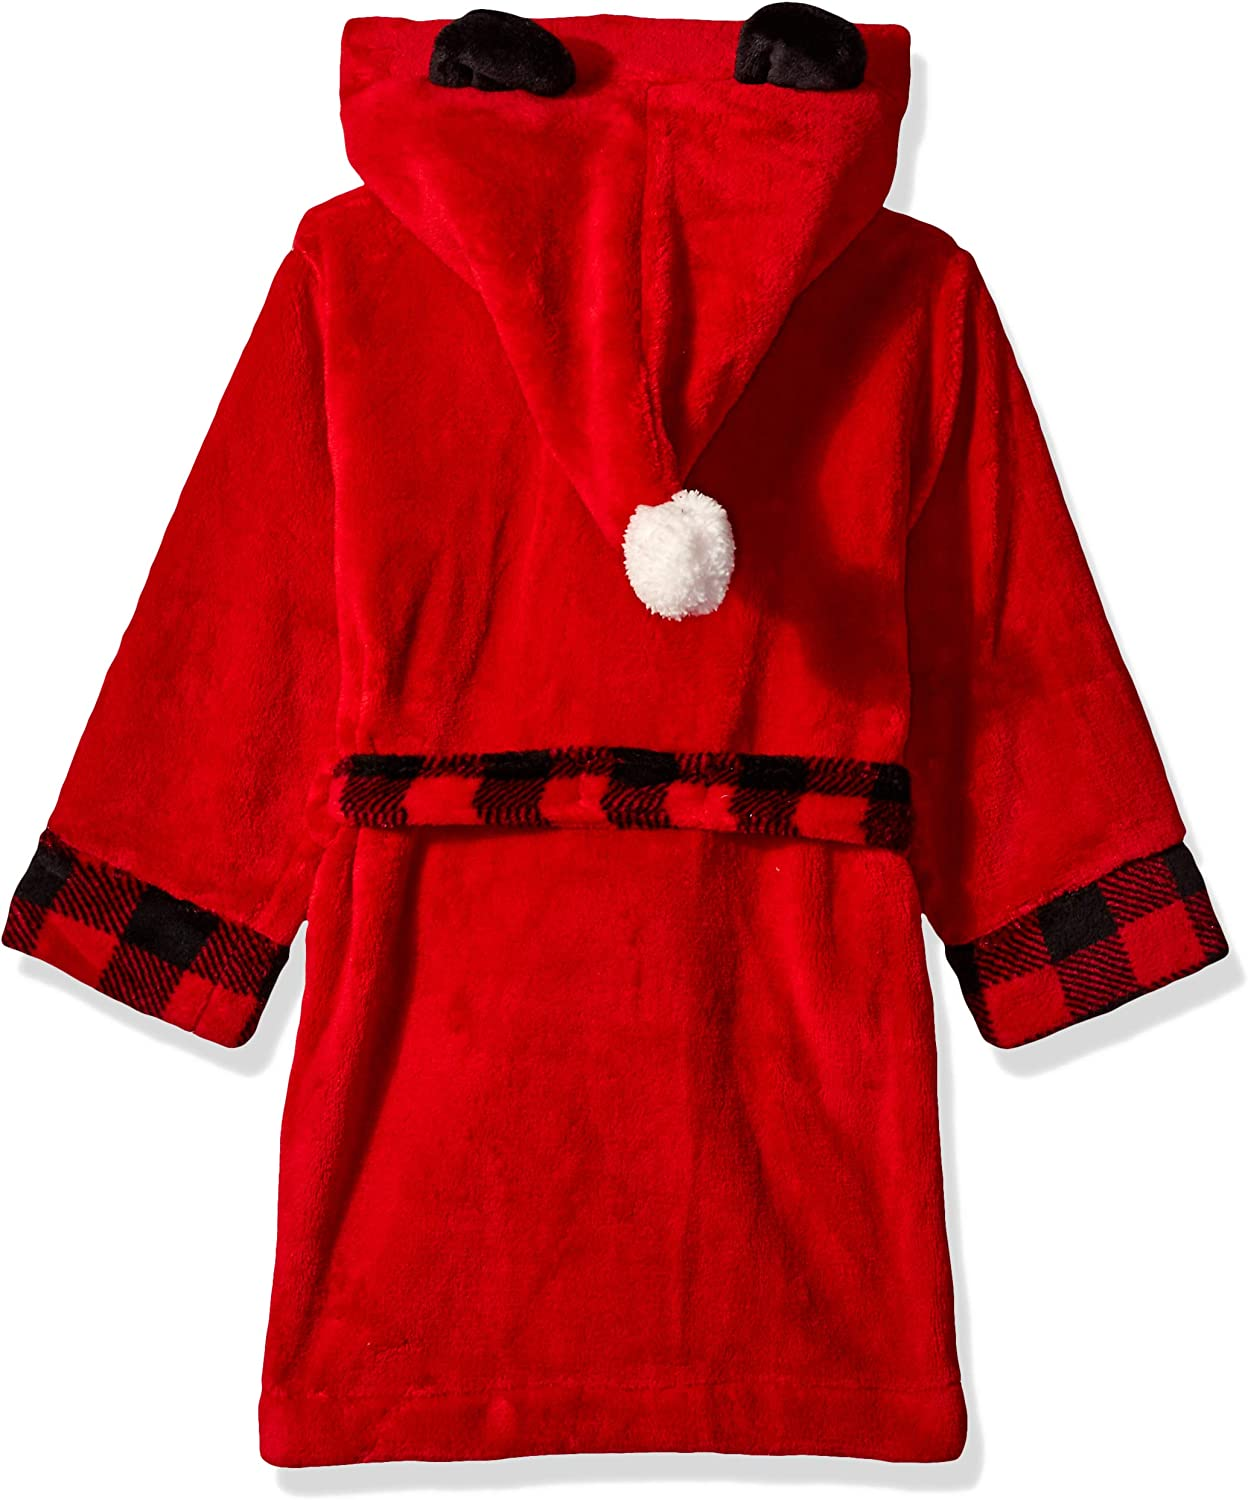 Petit Lem Kids Little Holiday Unisex Hooded Robe Cute and Cozy Softness Comfy